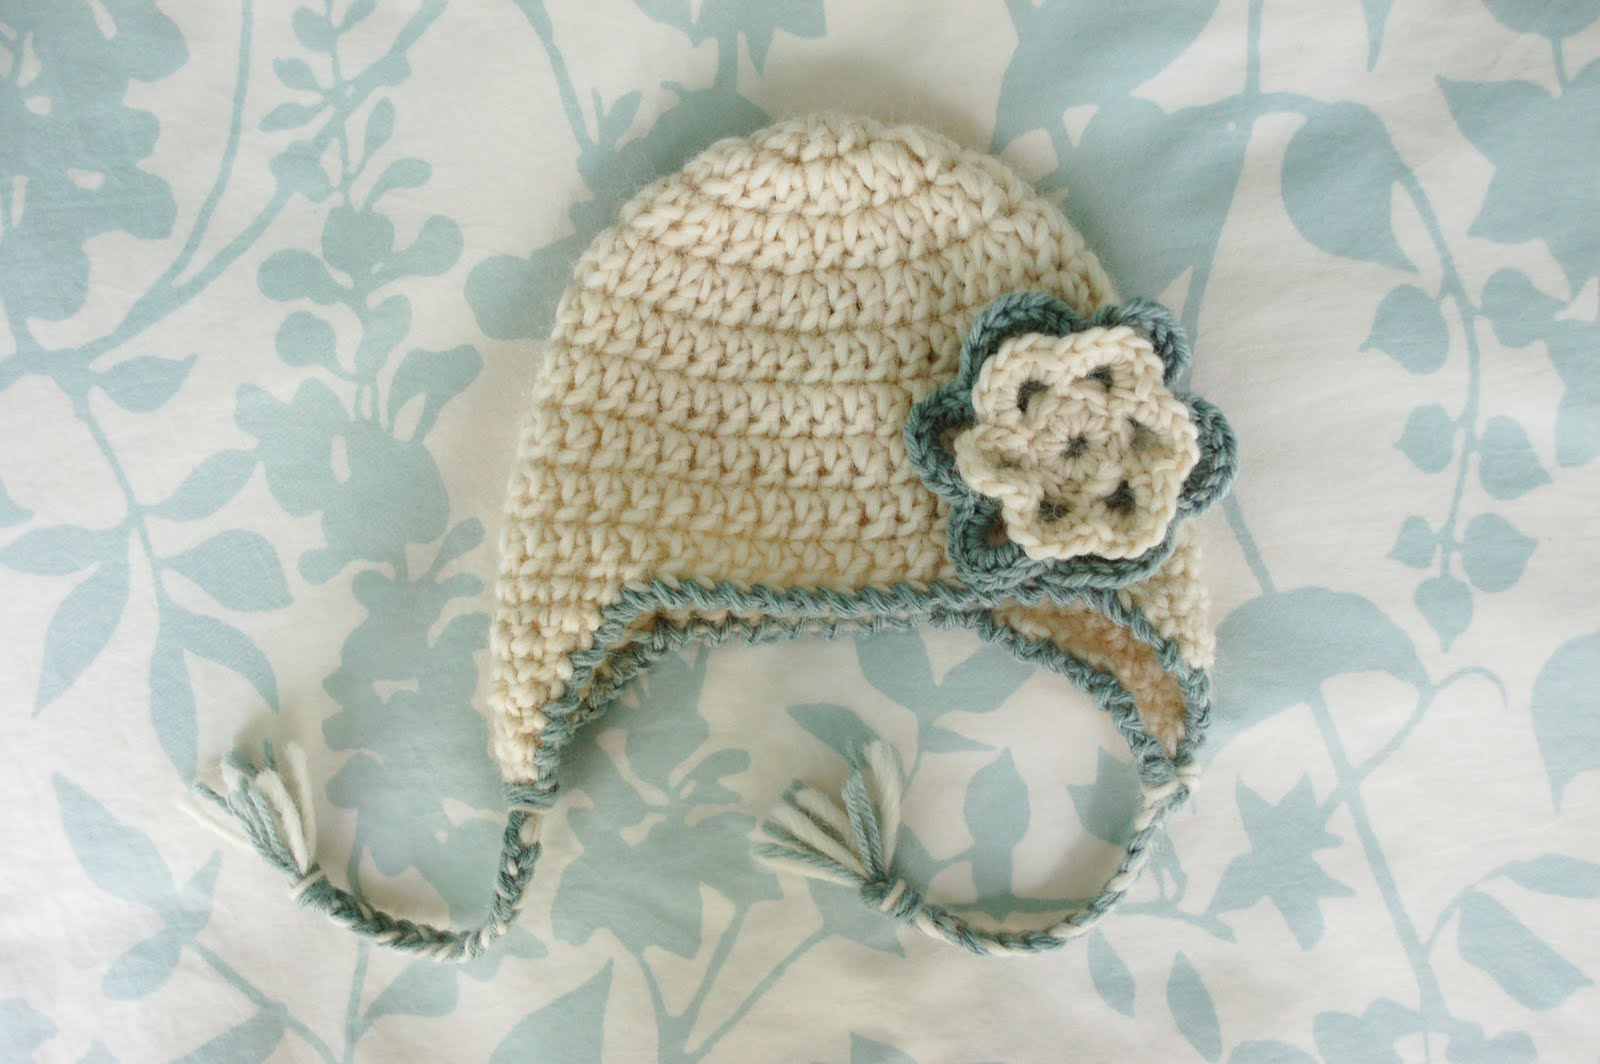 Crochet Baby Hat Pattern Instructions : Alli Crafts: Free Pattern: Baby Earflap Hat - Newborn